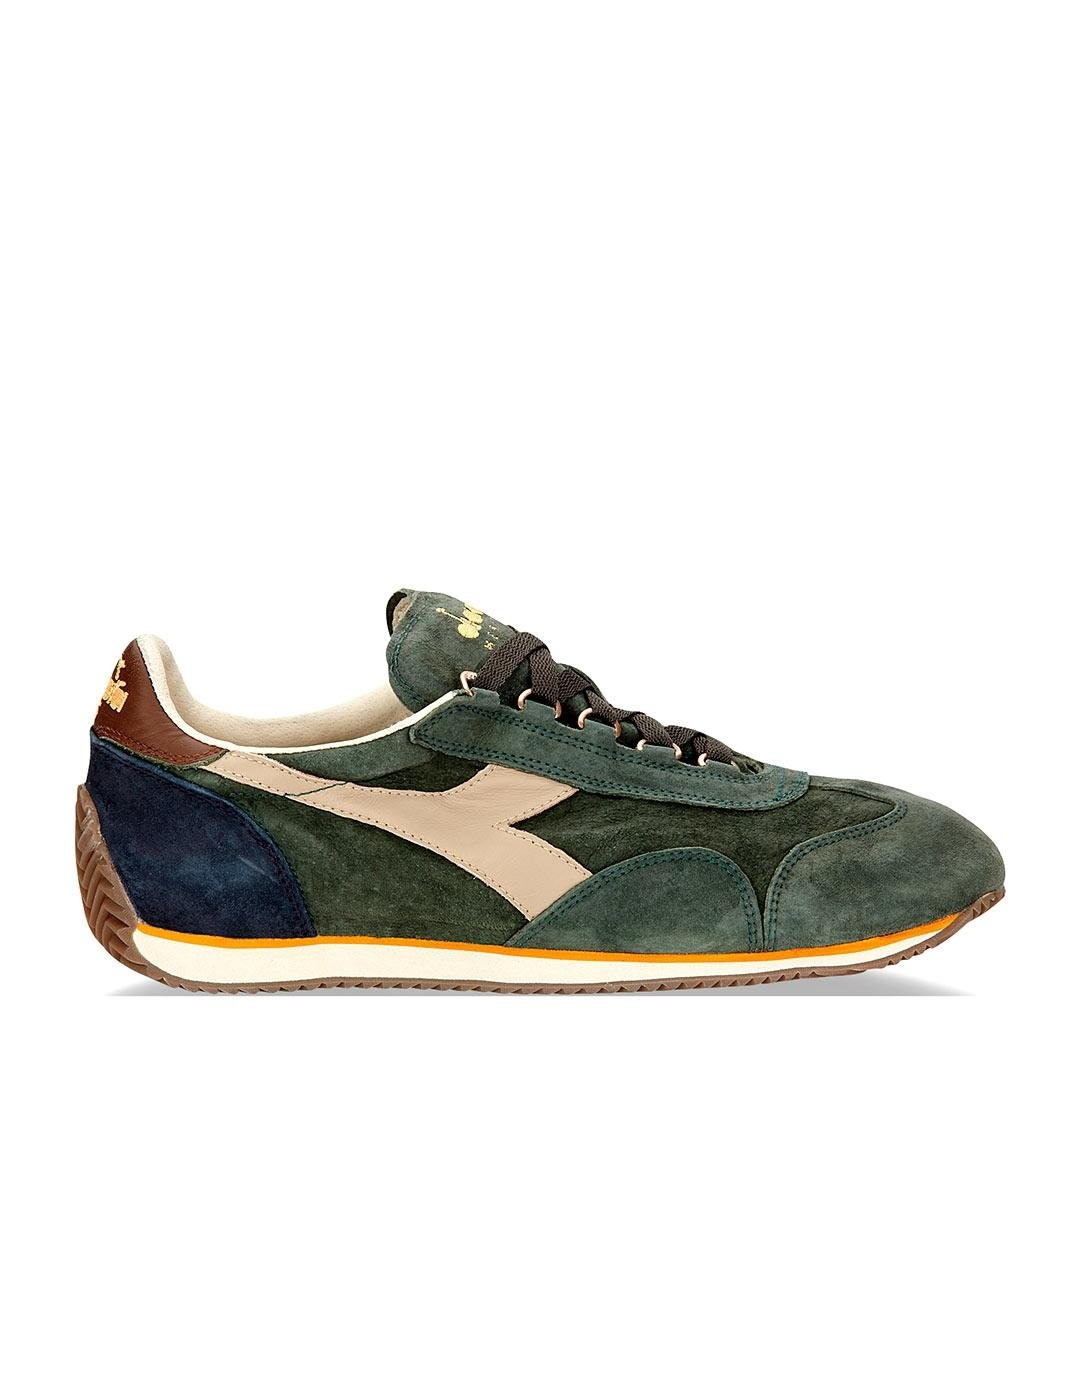 calzature bene fuori x miglior valore Diadora Heritage Equipe S. sw C7154: Amazon.co.uk: Sports & Outdoors